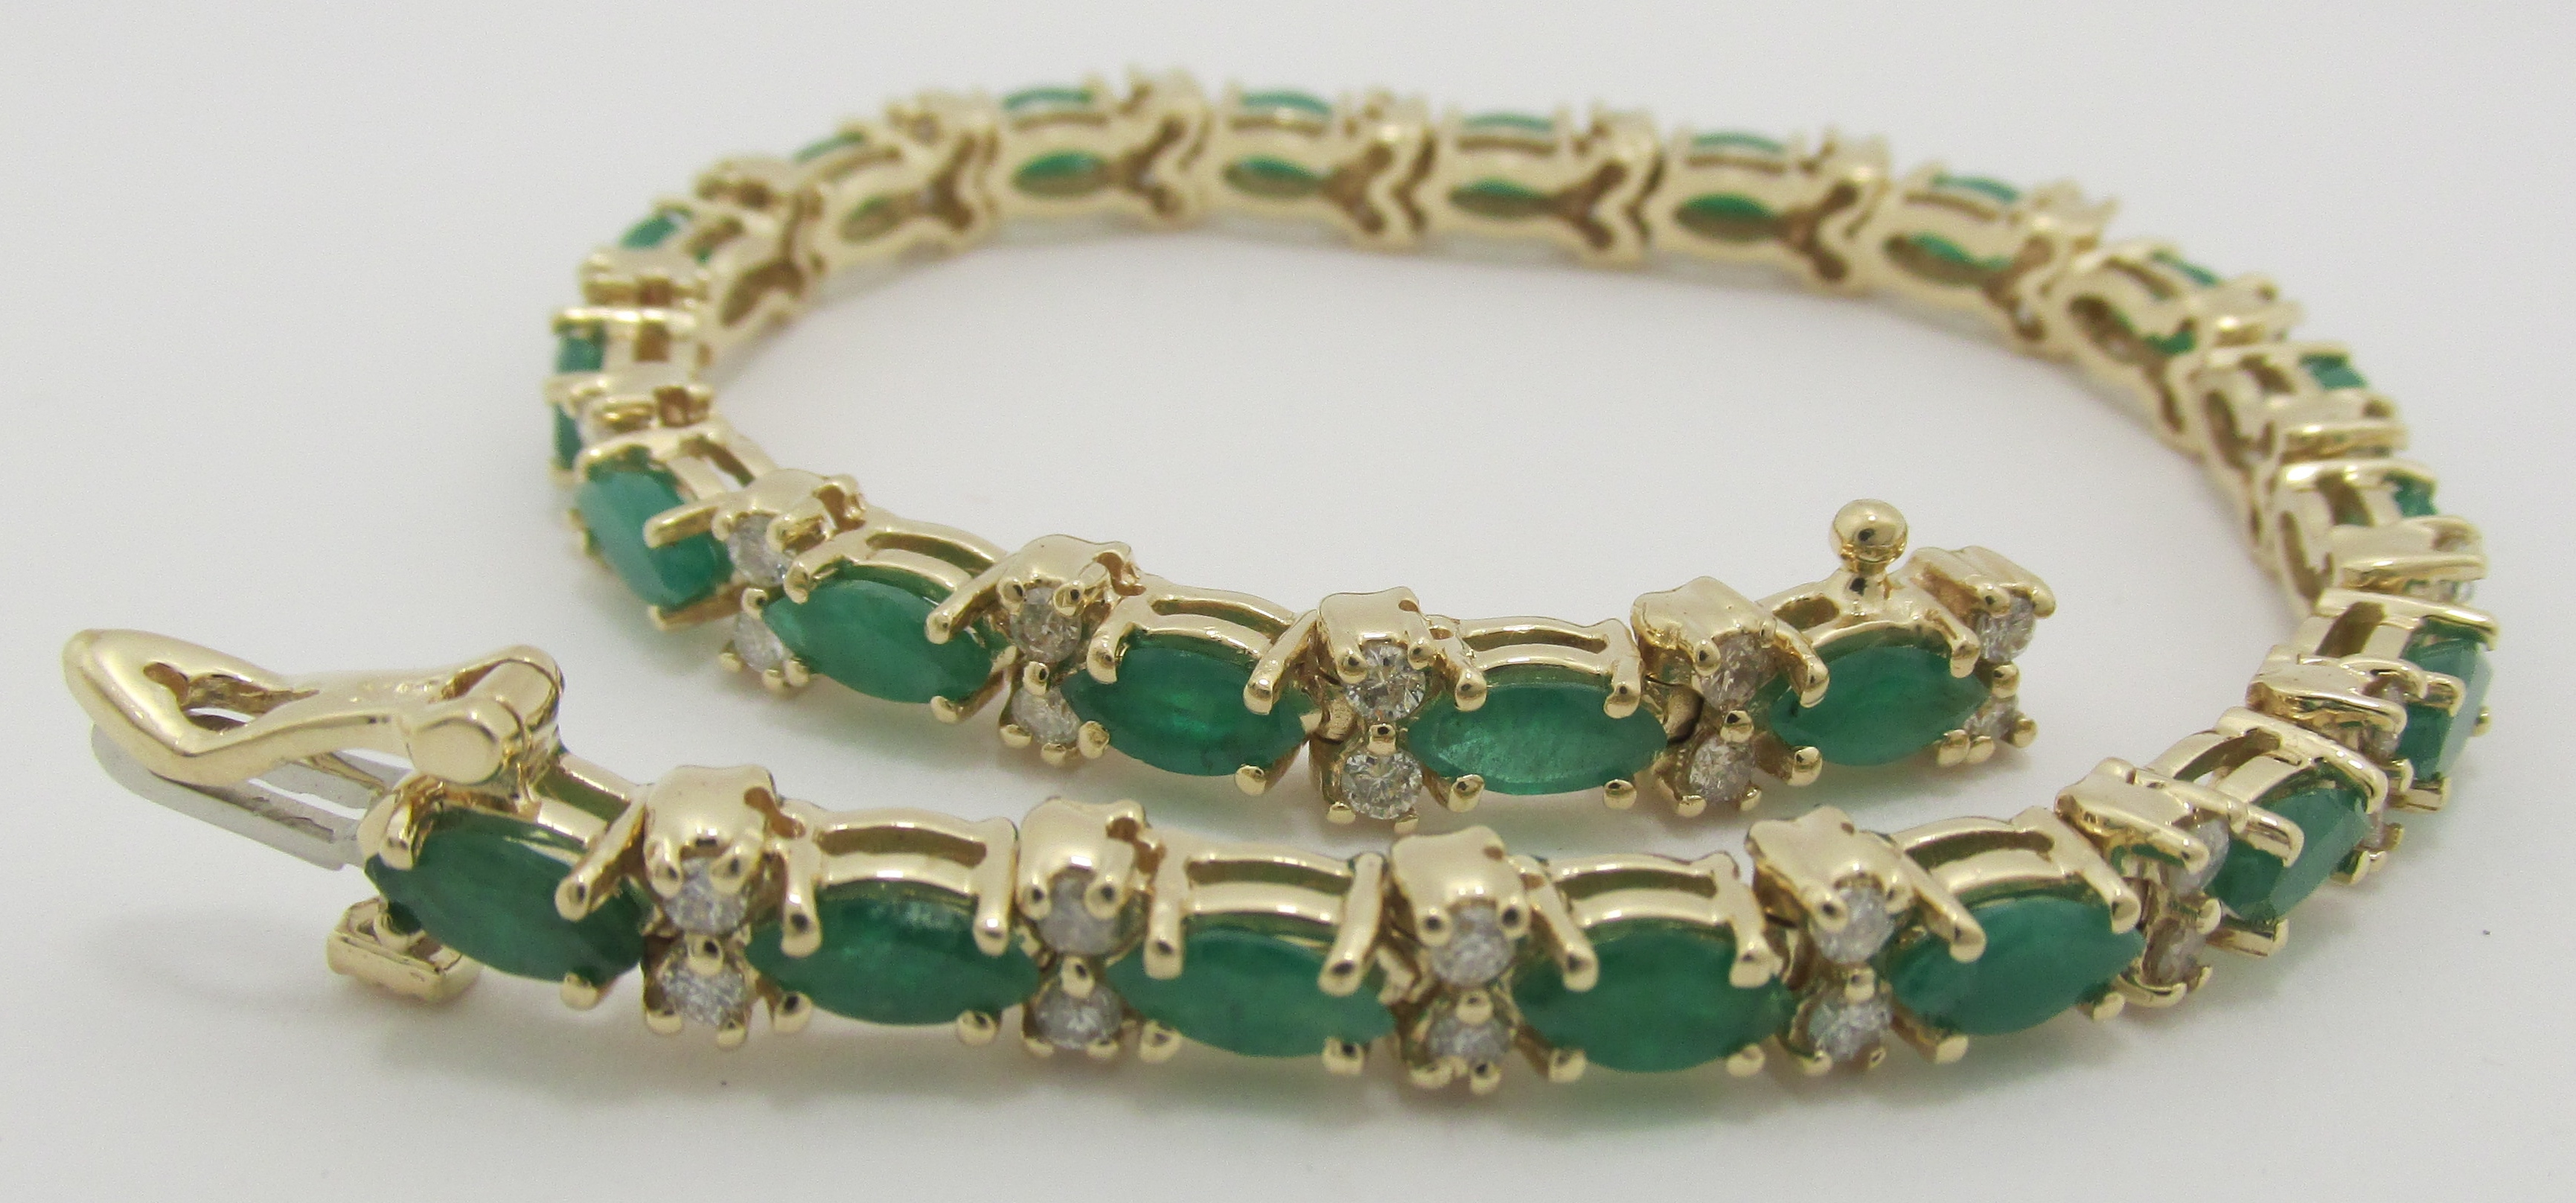 14k Solid Gold Genuine Emerald And Diamond Tennis Bracelet